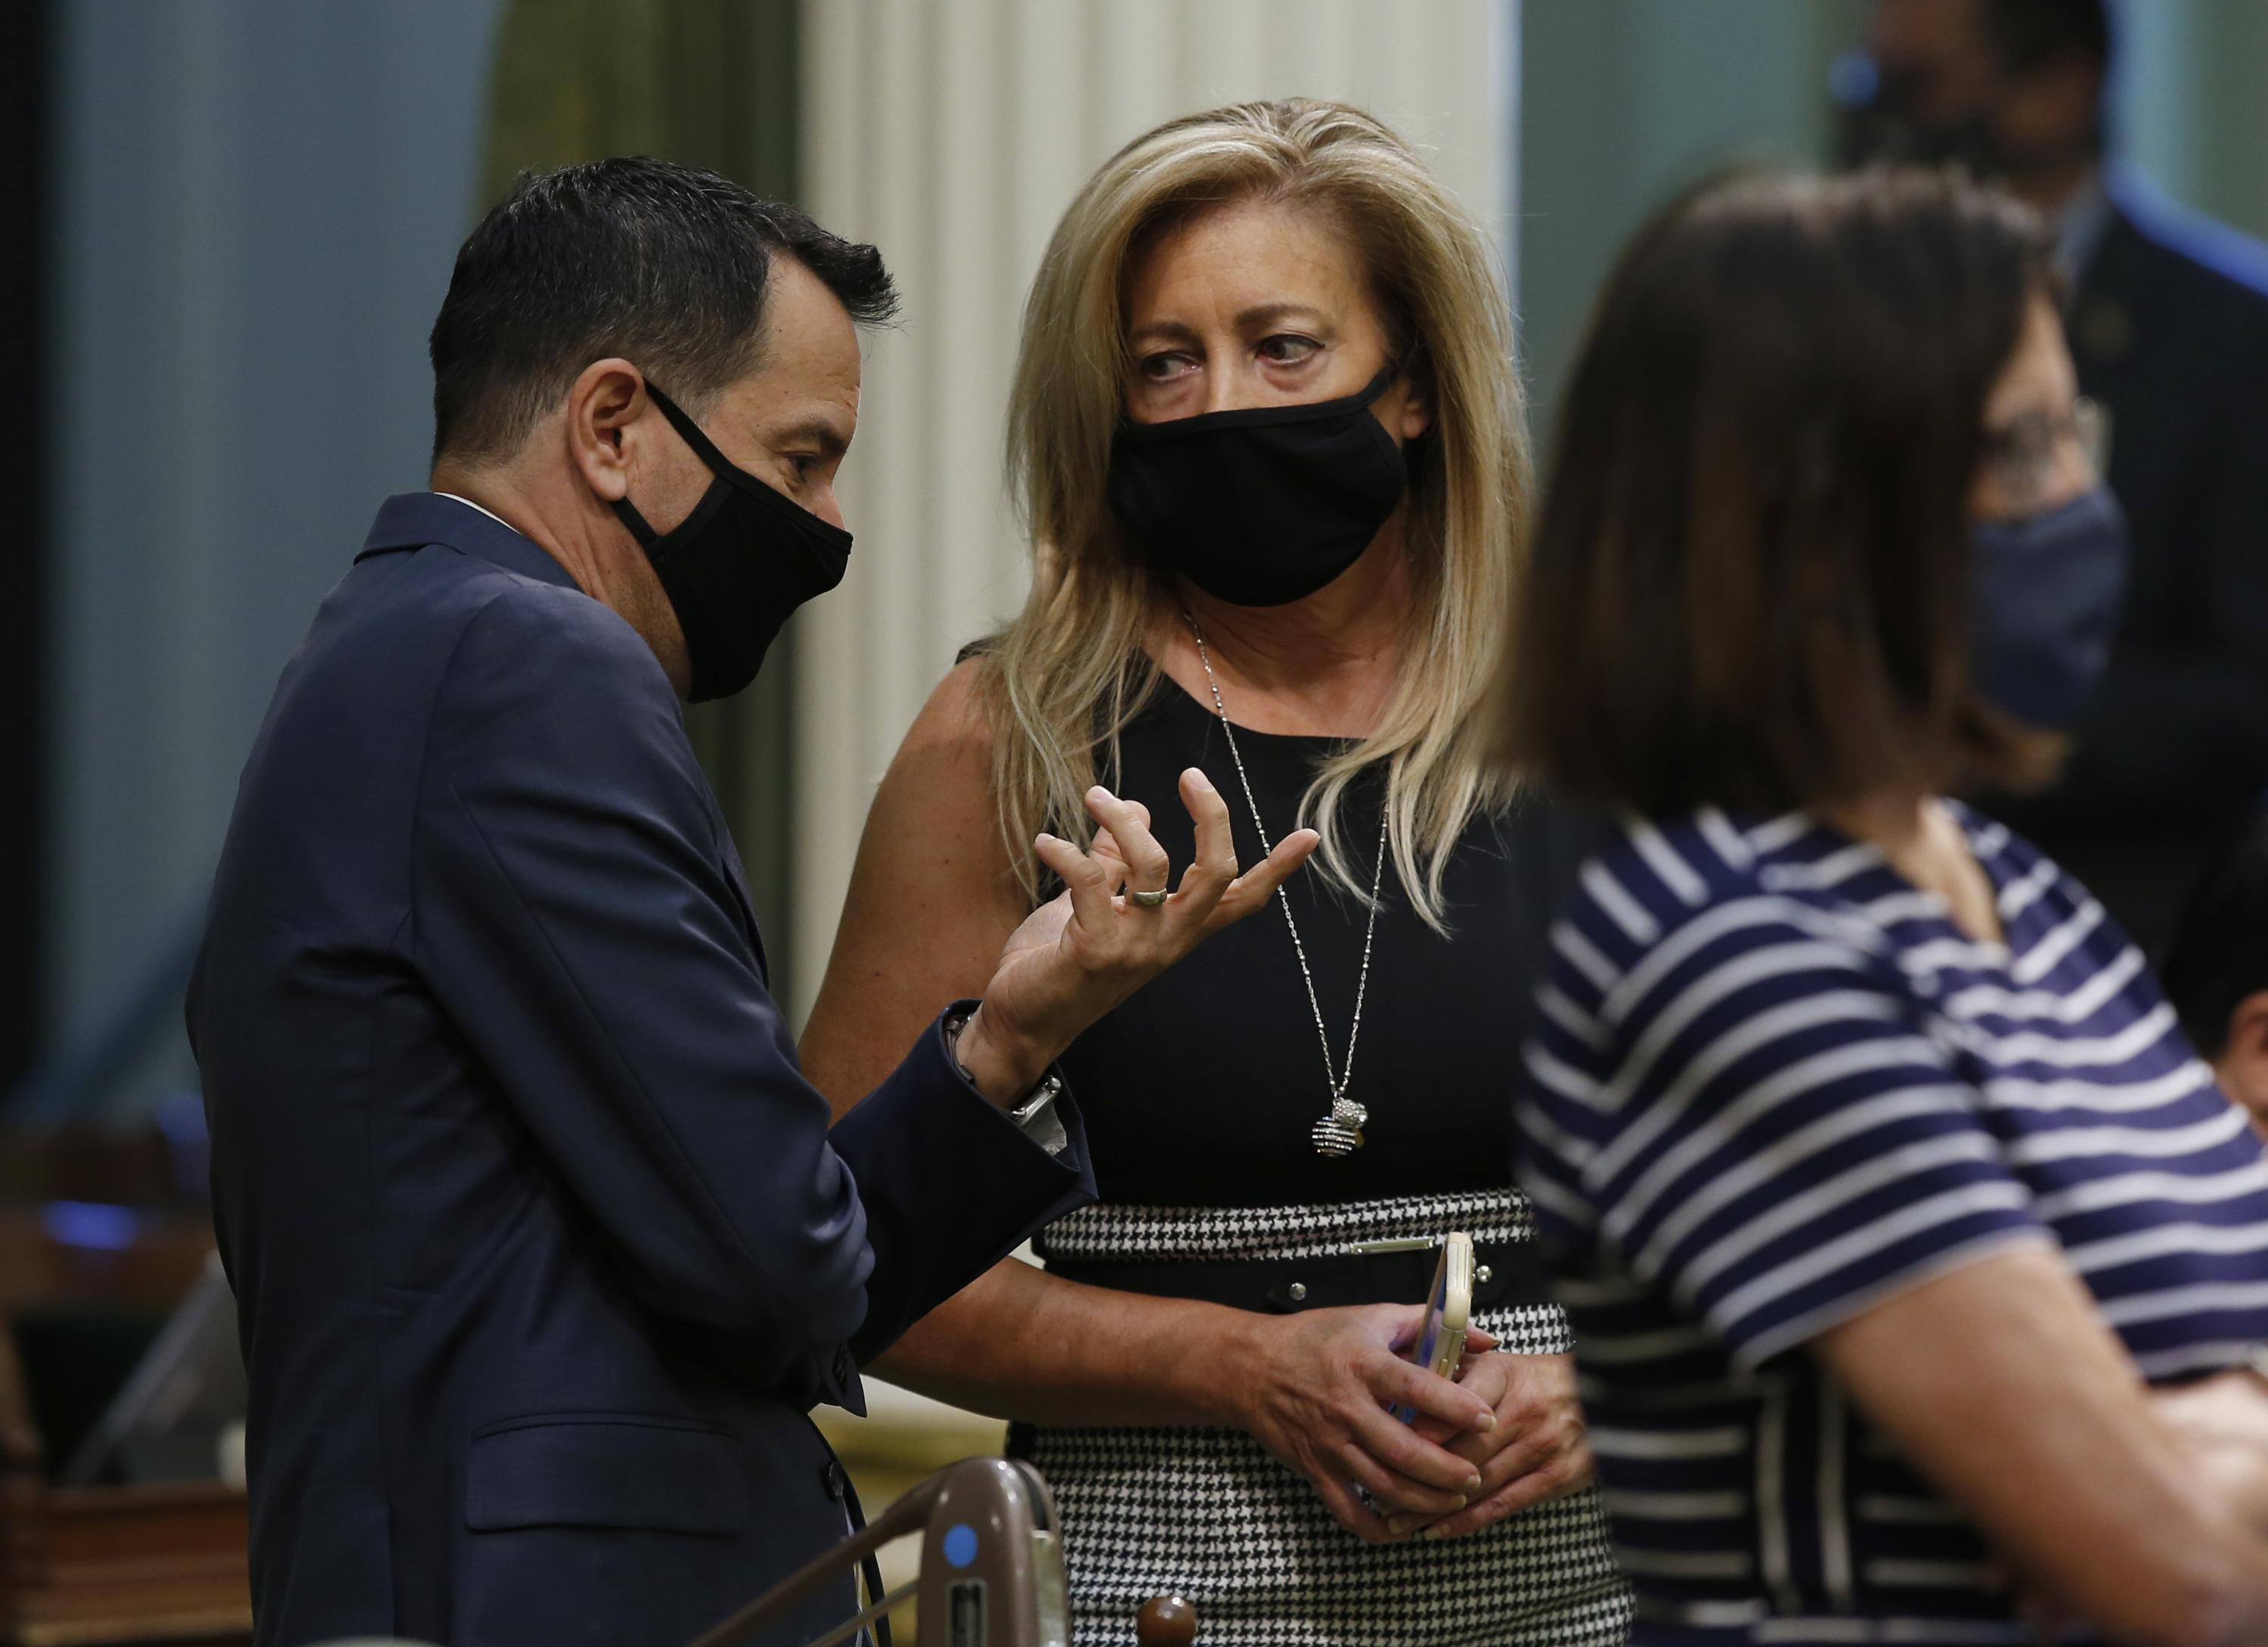 Virus, housing issues await returning California lawmakers